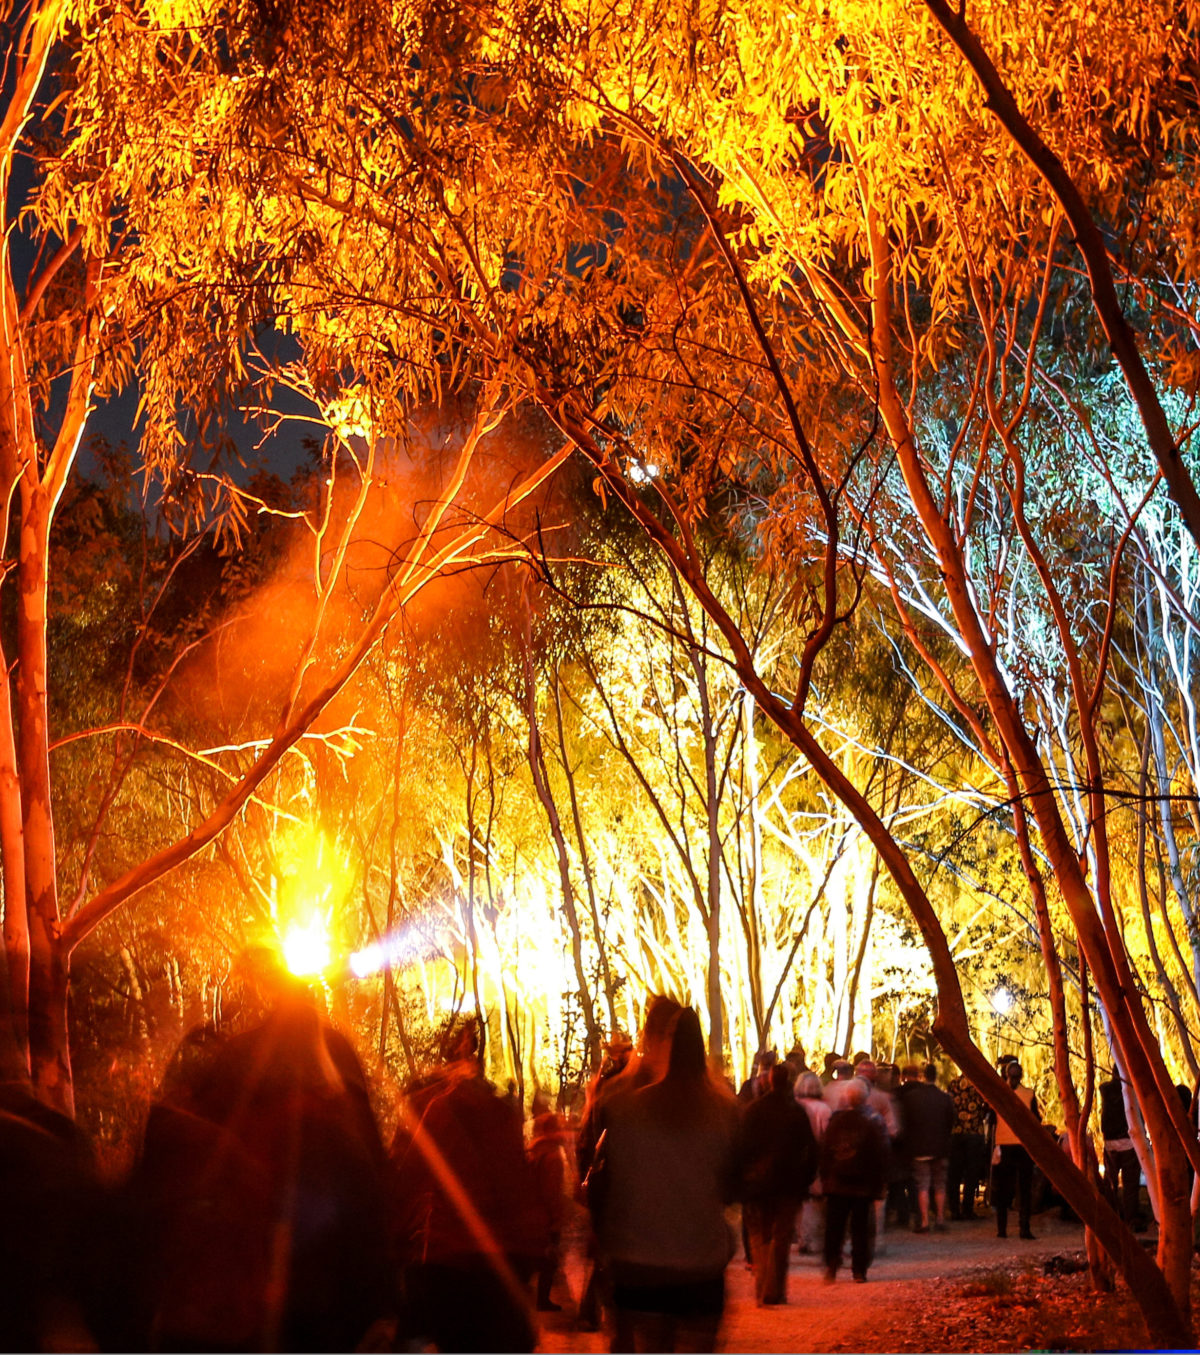 A crowd of people stand under the eucalpyt trees at twilight. In the distance, light pours is if from a huge stage.